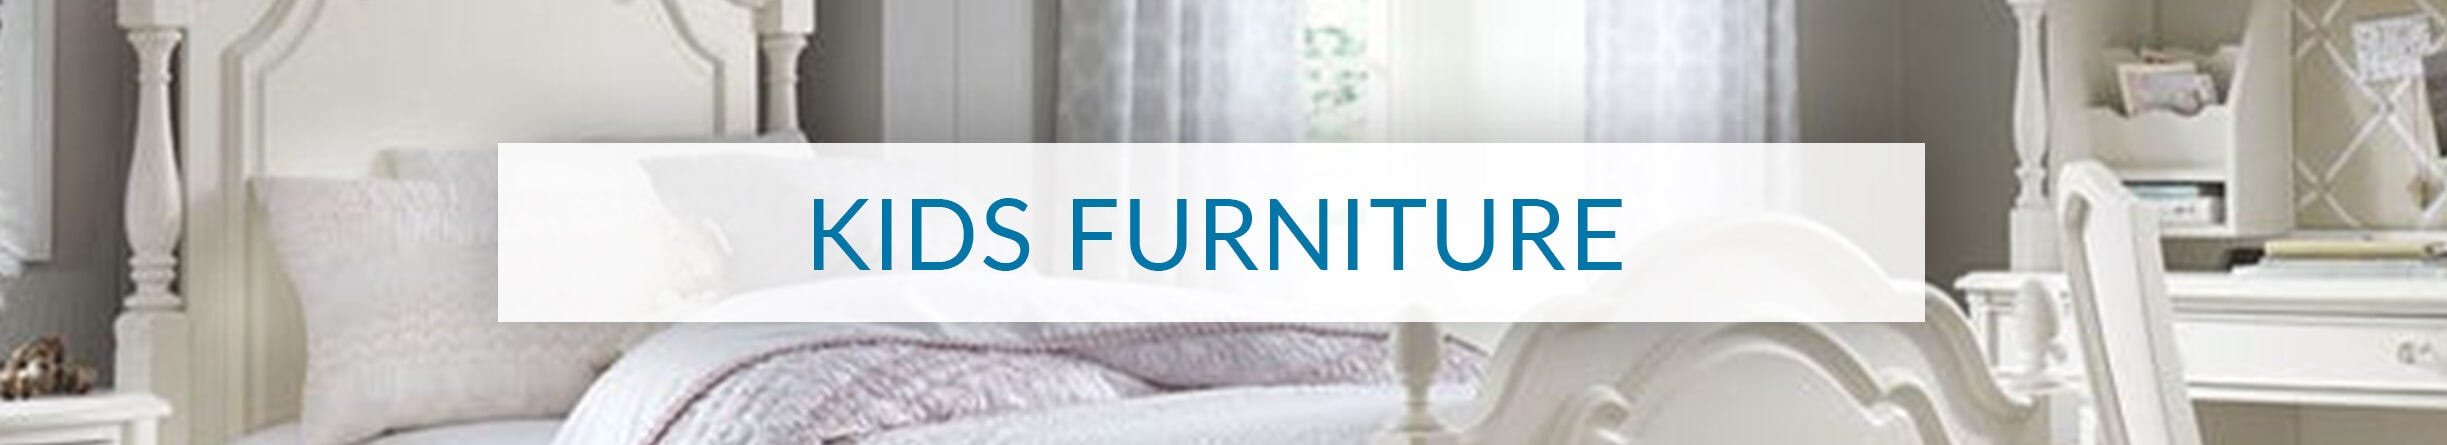 Shop Kids Furniture at US-Mattress.com